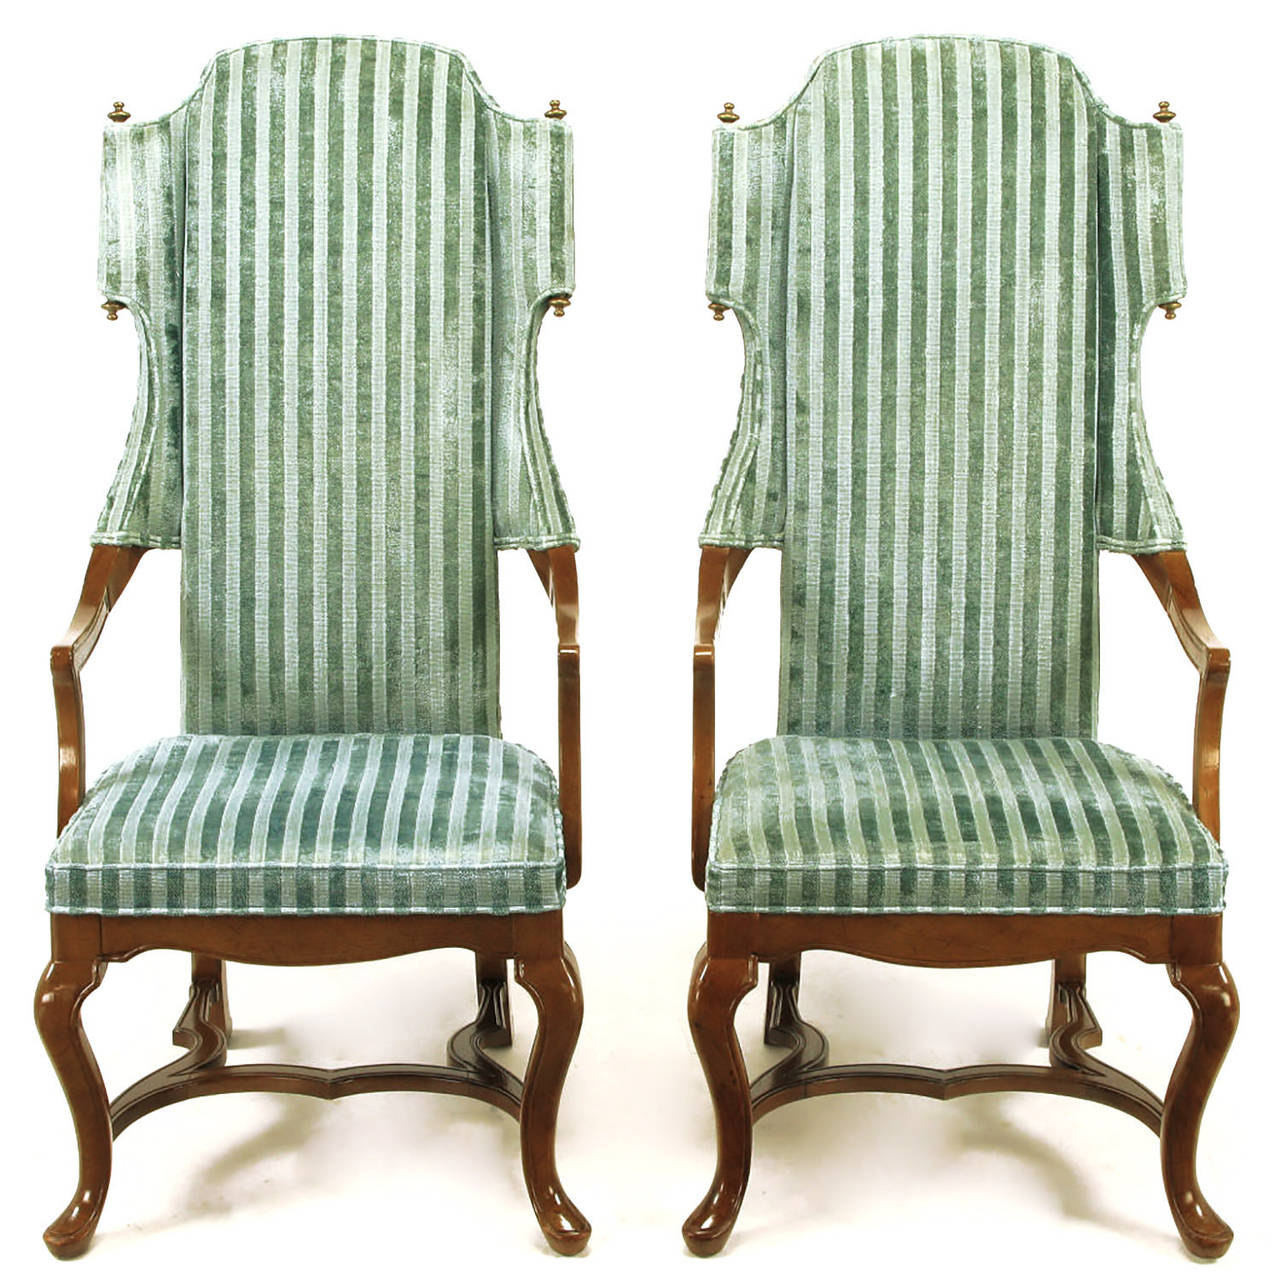 Tall Back Armchairs By Jim Peed For His Esperanto Collection For Drexel.  Open Sides And